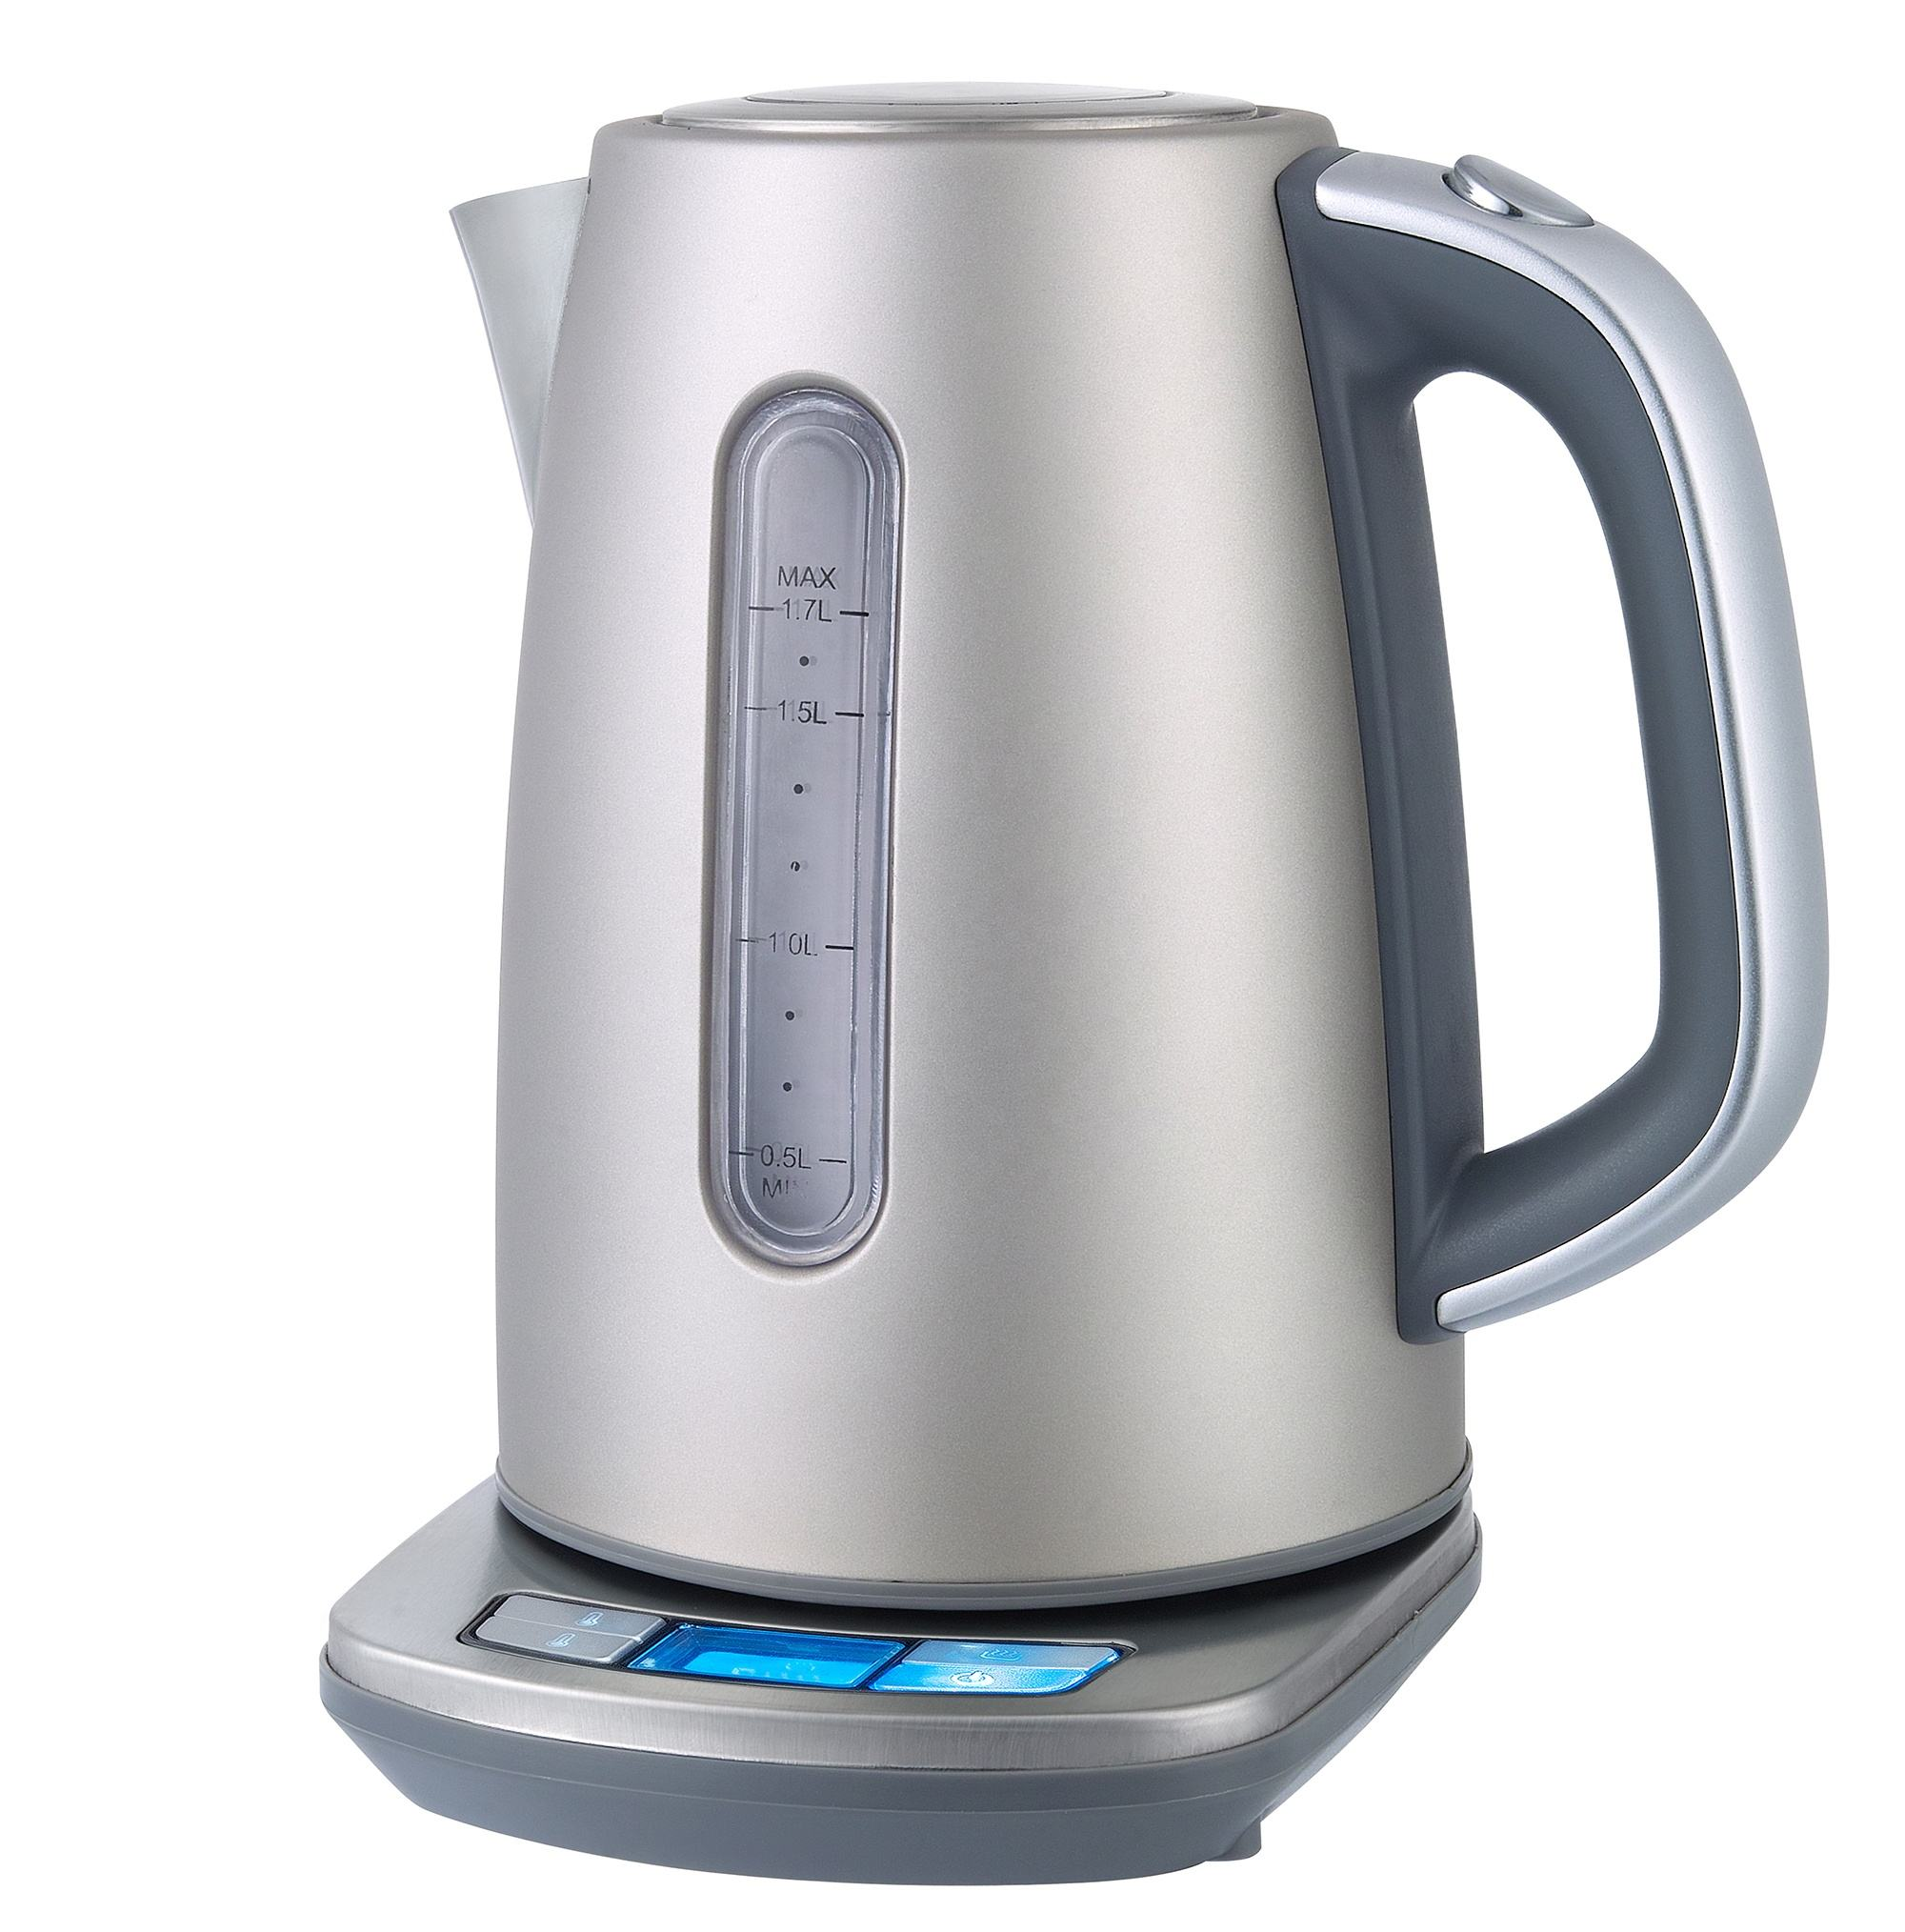 1.7L LED 360 degree rotational electric kettle temperature control keep warm Tea electric kettle